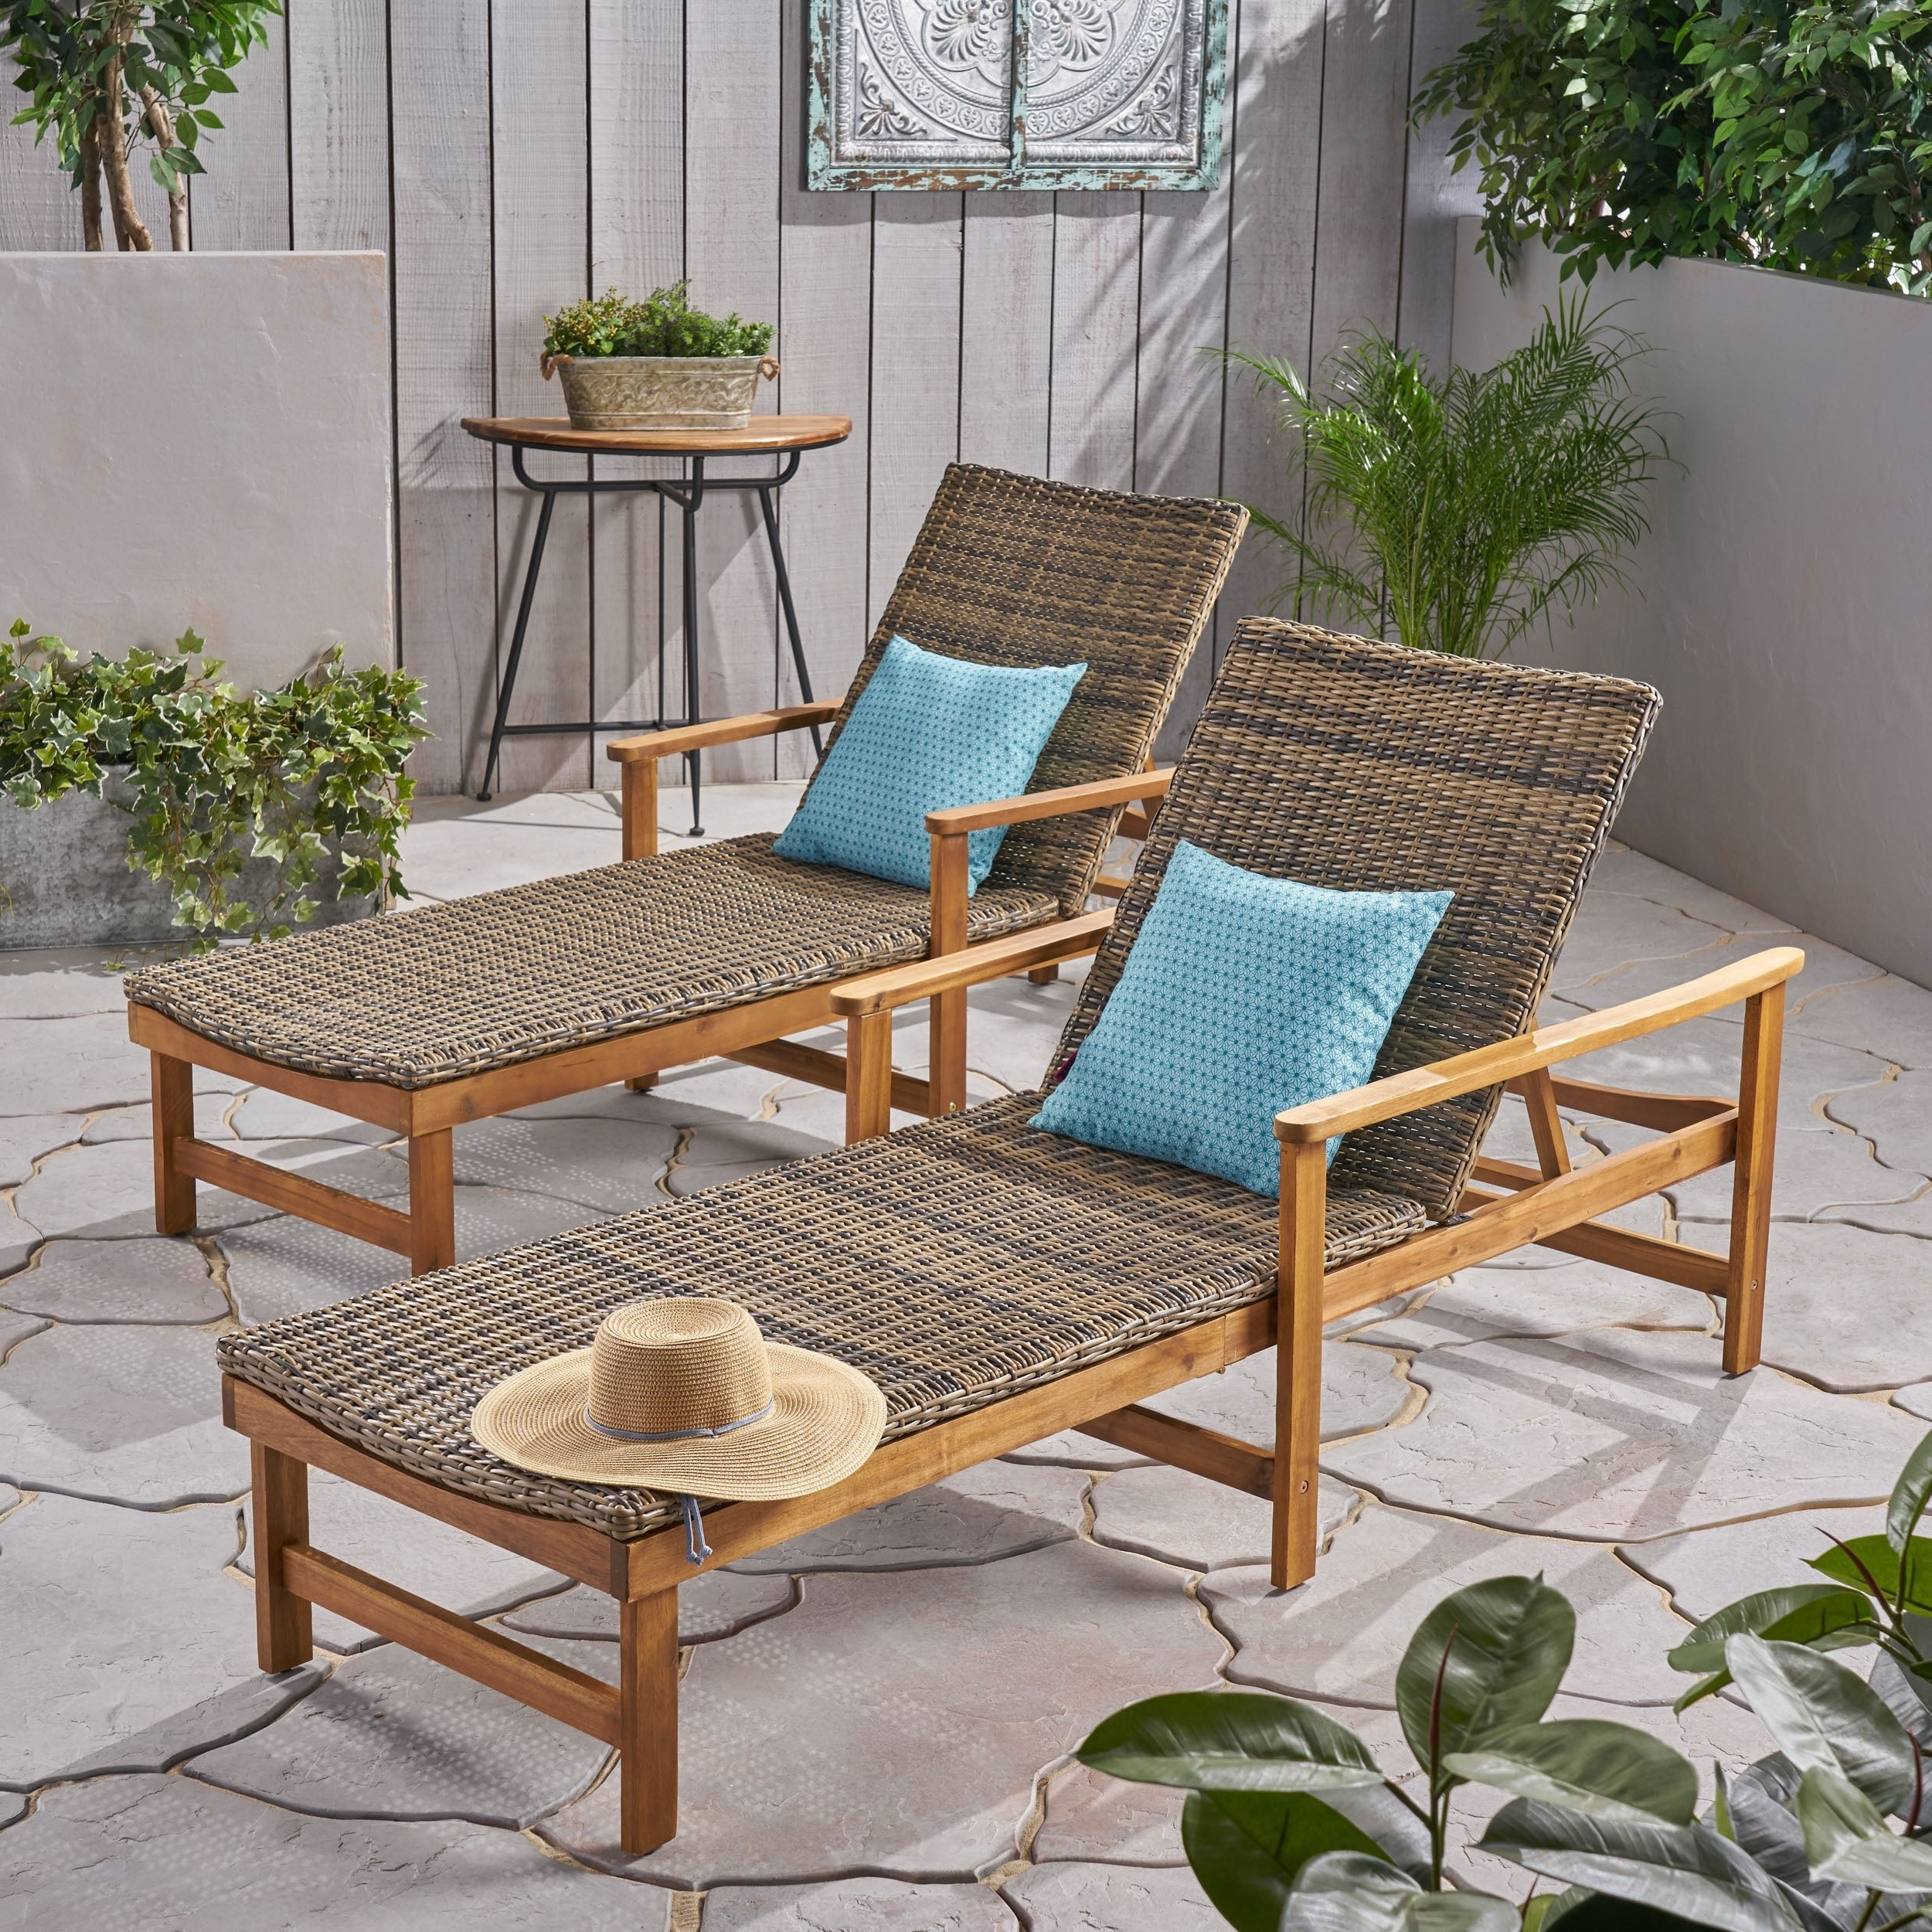 Recent Hampton Outdoor Chaise Lounges Acacia Wood And Wicker (Set Of 2) Christopher Knight Home With Outdoor Rustic Acacia Wood Chaise Lounges With Wicker Seats (View 22 of 25)